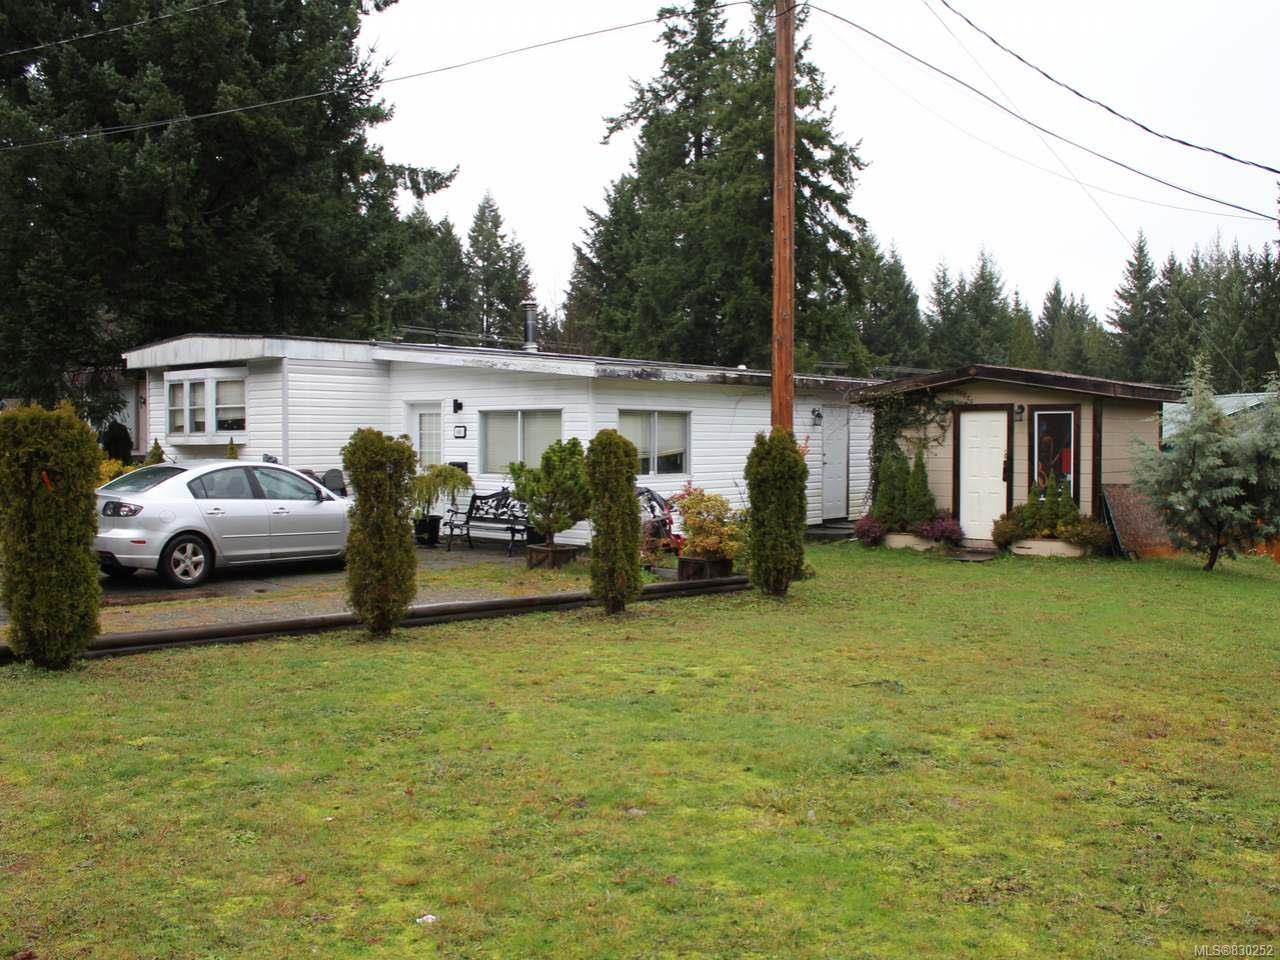 Main Photo: 68 1901 E RYAN E ROAD in COMOX: CV Comox Peninsula Manufactured Home for sale (Comox Valley)  : MLS®# 830252